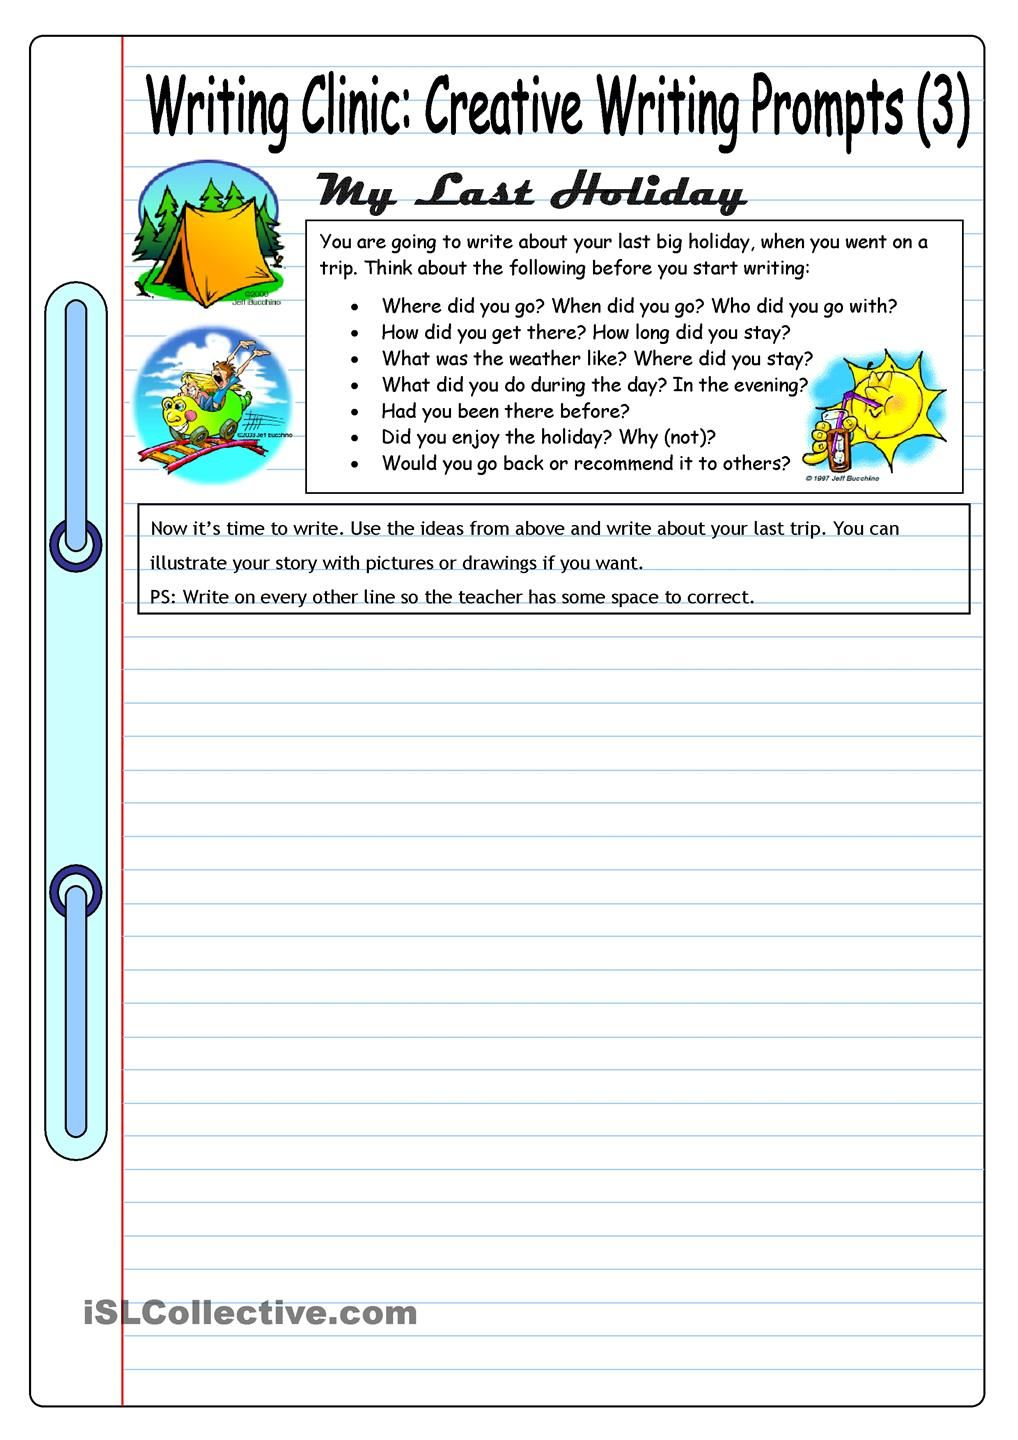 Worksheets Esl Writing Worksheets writing clinic creative prompts 3 my last holiday worksheet free esl printable worksheets made by teachers